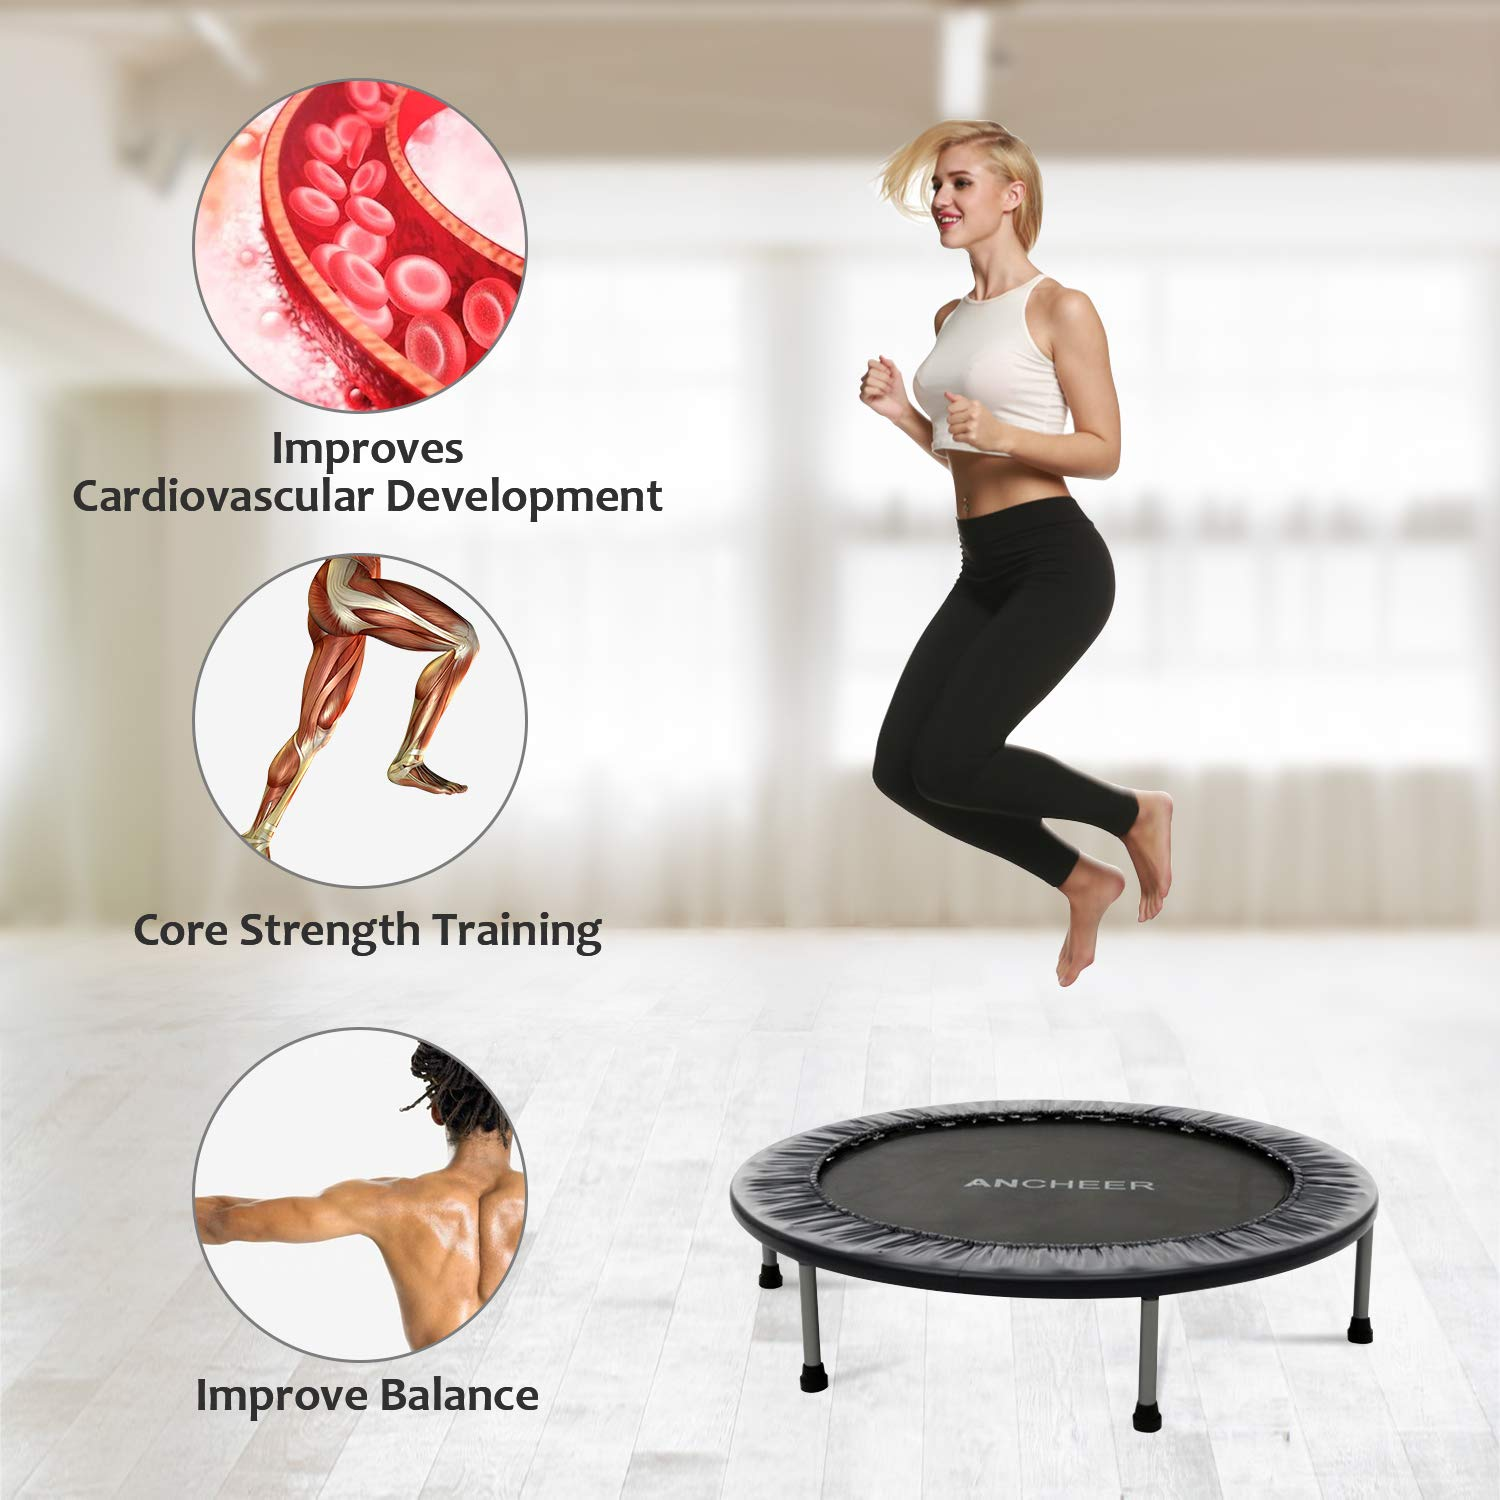 ANCHEER Mini Trampoline with Safety Pad, 220lbs Weight Capacity Fitness Rebounder Trampolines for Home Gym Office Garden Workout Cardio Training Equipment (Black, 40inch-Folding one time) by ANCHEER (Image #5)